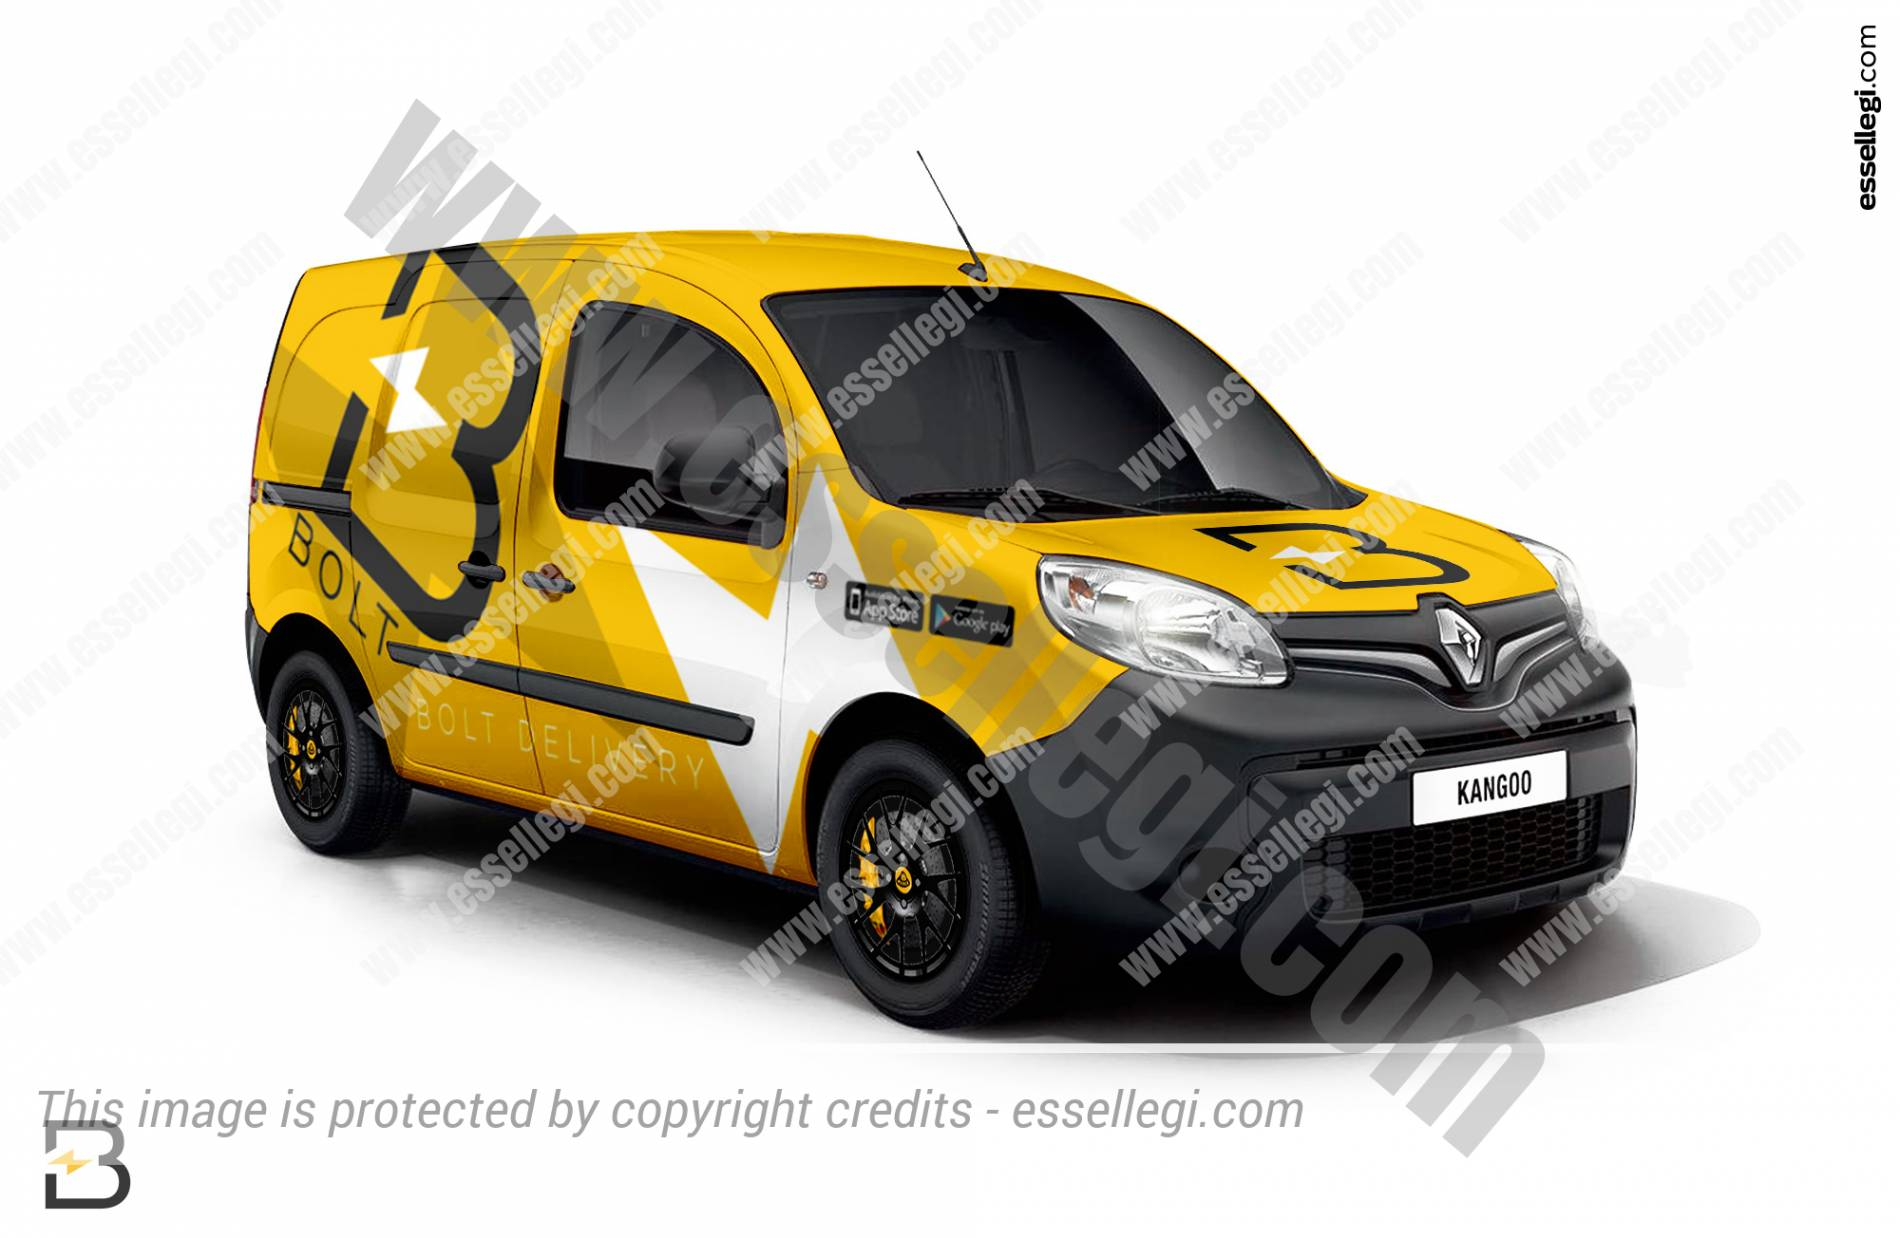 Renault Kangoo | Van Wrap Design by Essellegi. Van Signs, Van Signage, Van Wrapping, Van Signwriting, Van Wrap Designer, Signs for Van, Van Logo, Van Graphic by Essellegi.